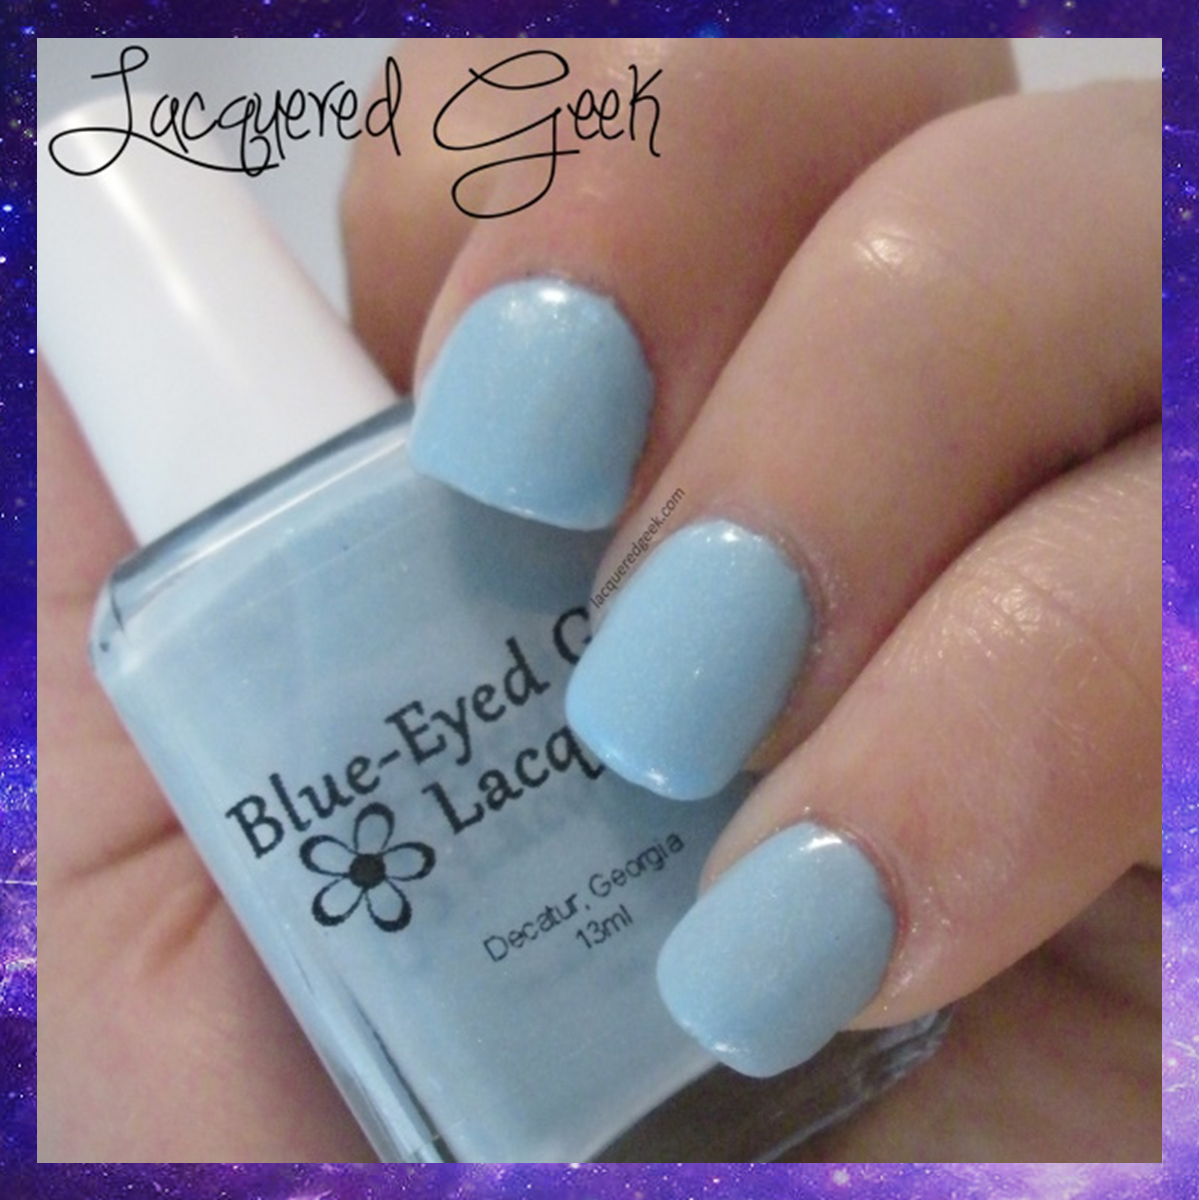 the ladies of peter pan duo blue-eyed girl lacquer sewing shadows